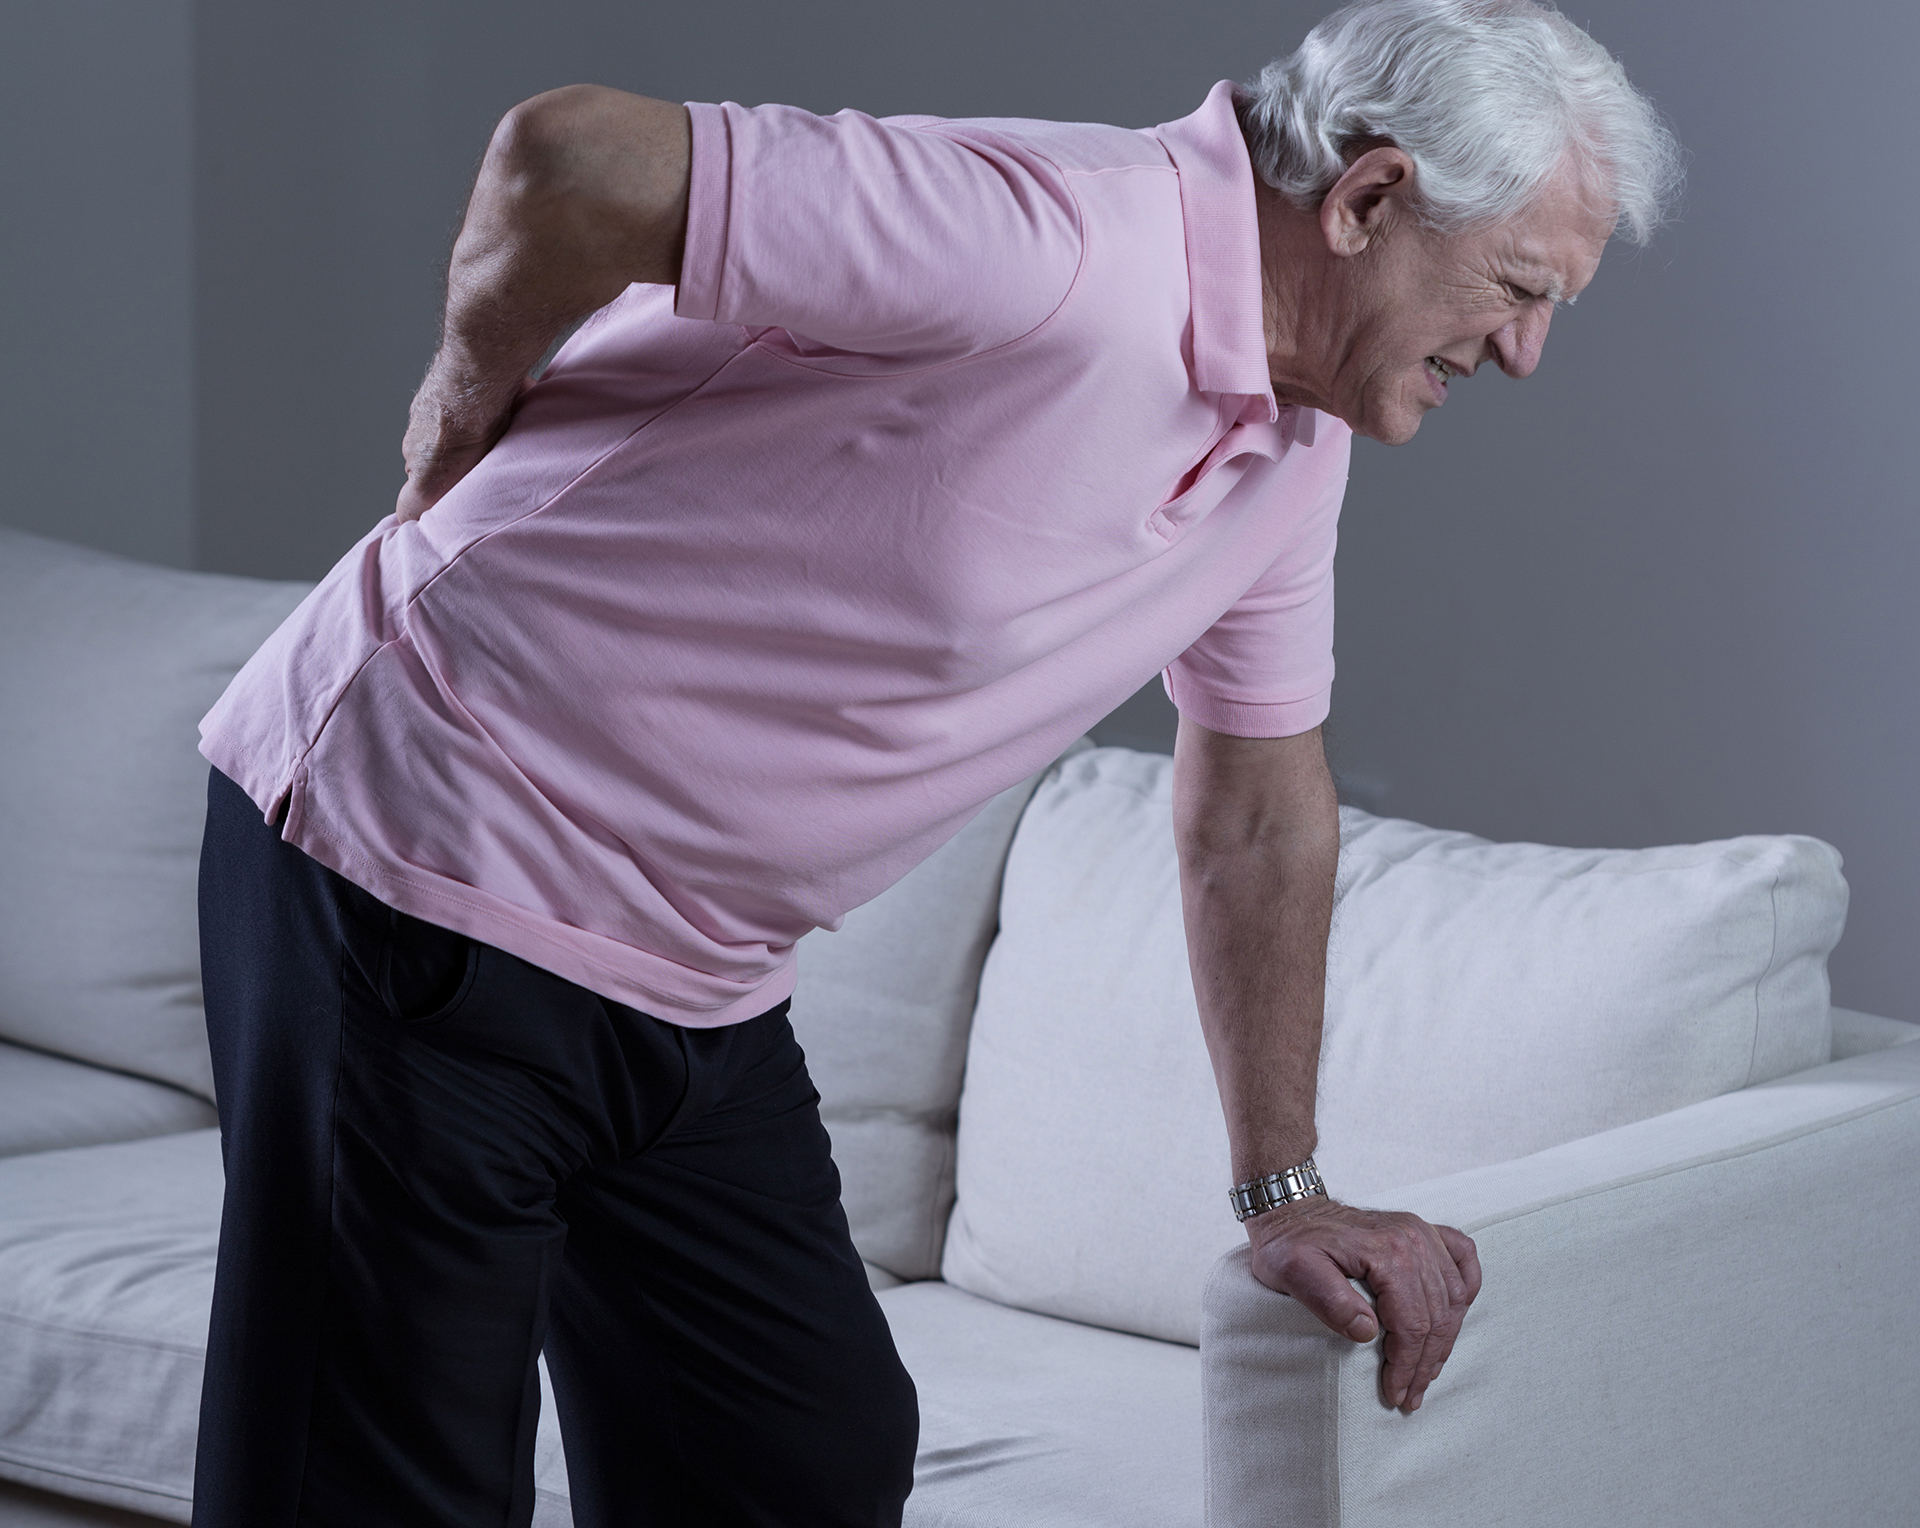 Treating Your Sciatica Naturally